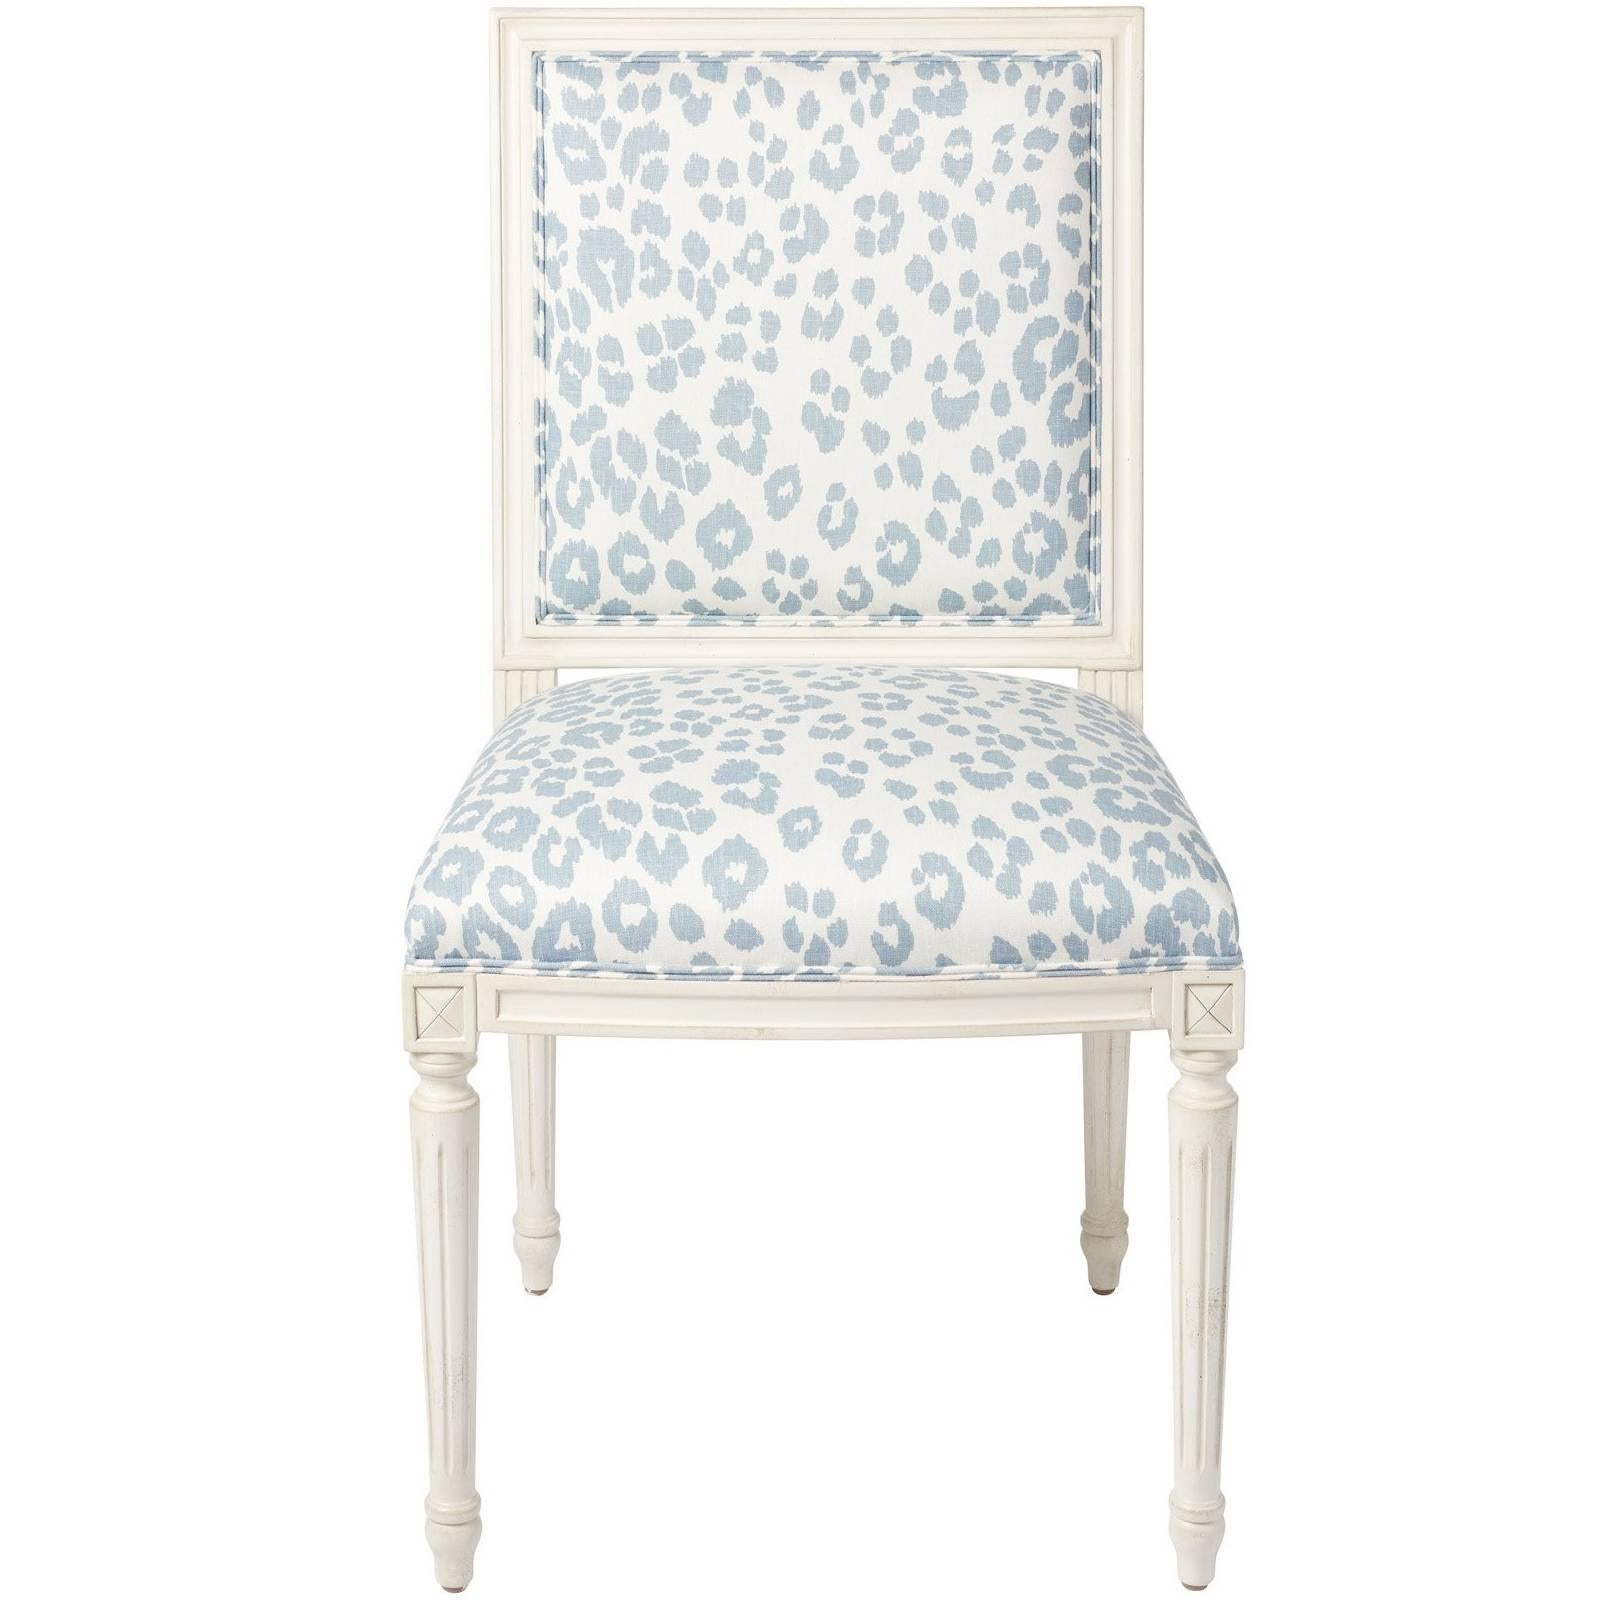 Schumacher Marie Therese Iconic Leopard Blue Hand-Carved Beechwood Side Chair